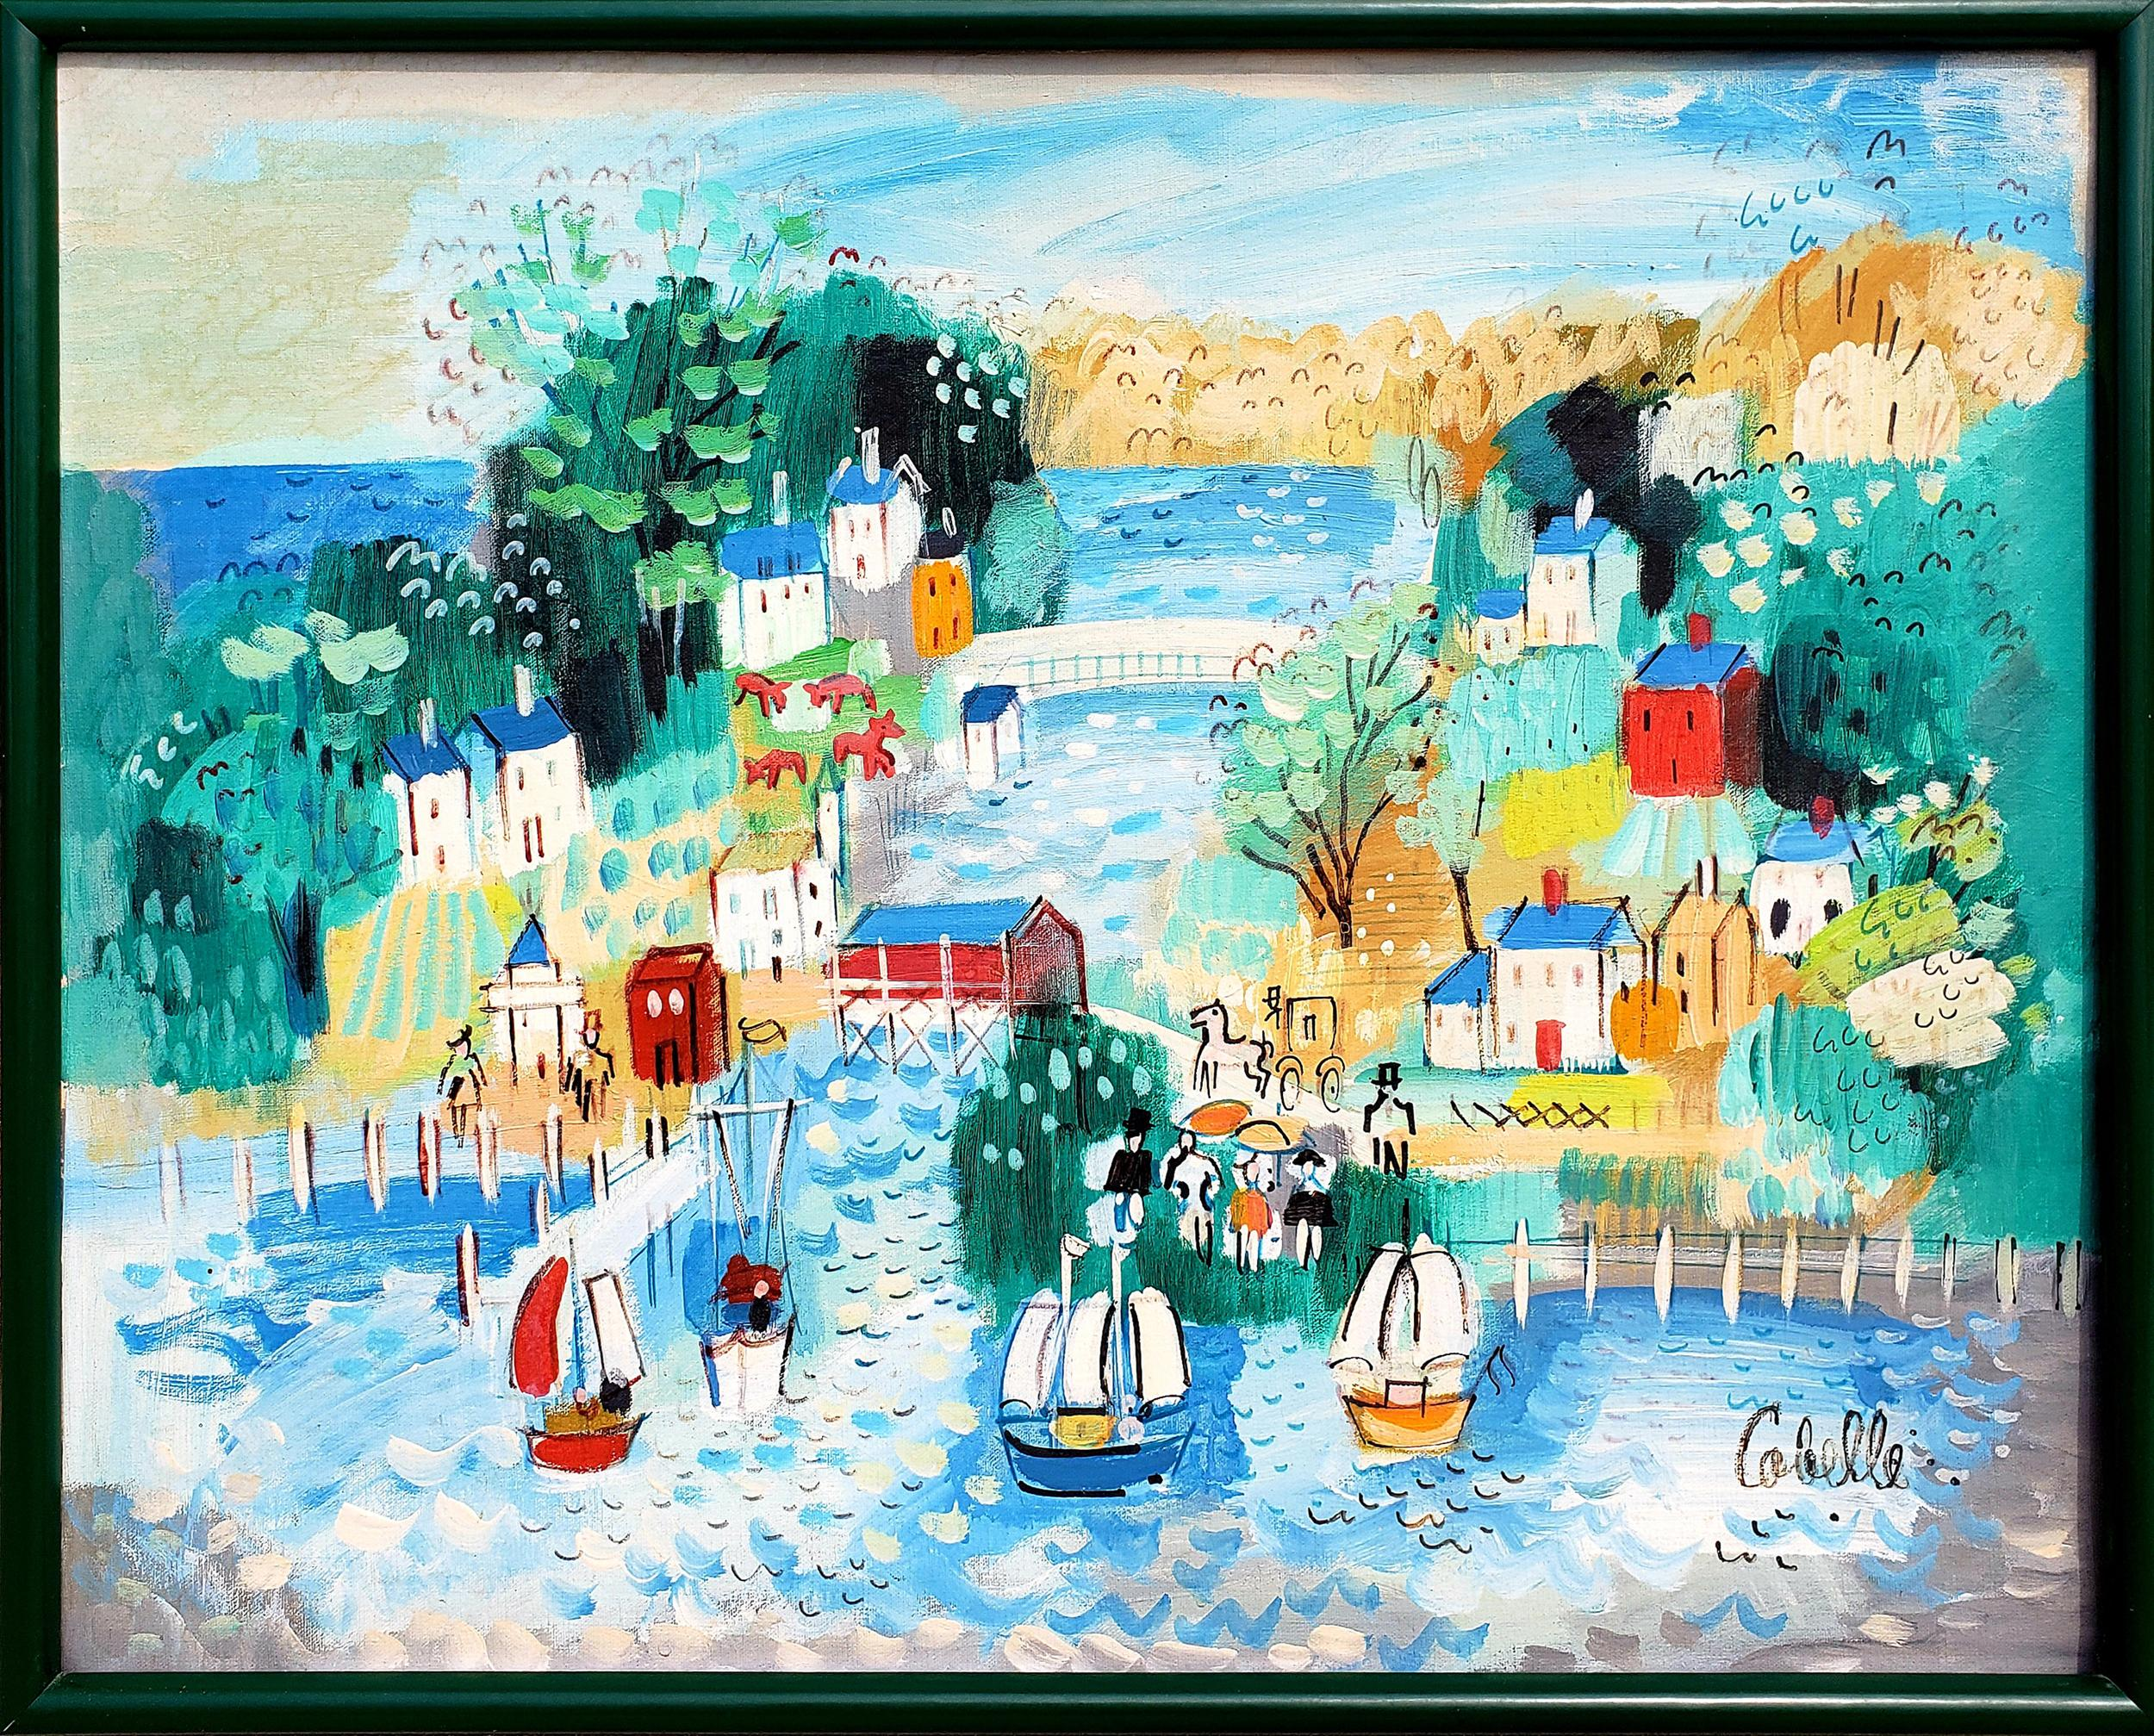 Charles Cobelle, Village Sailing Scene with Covered Bridge, Acrylic Painting